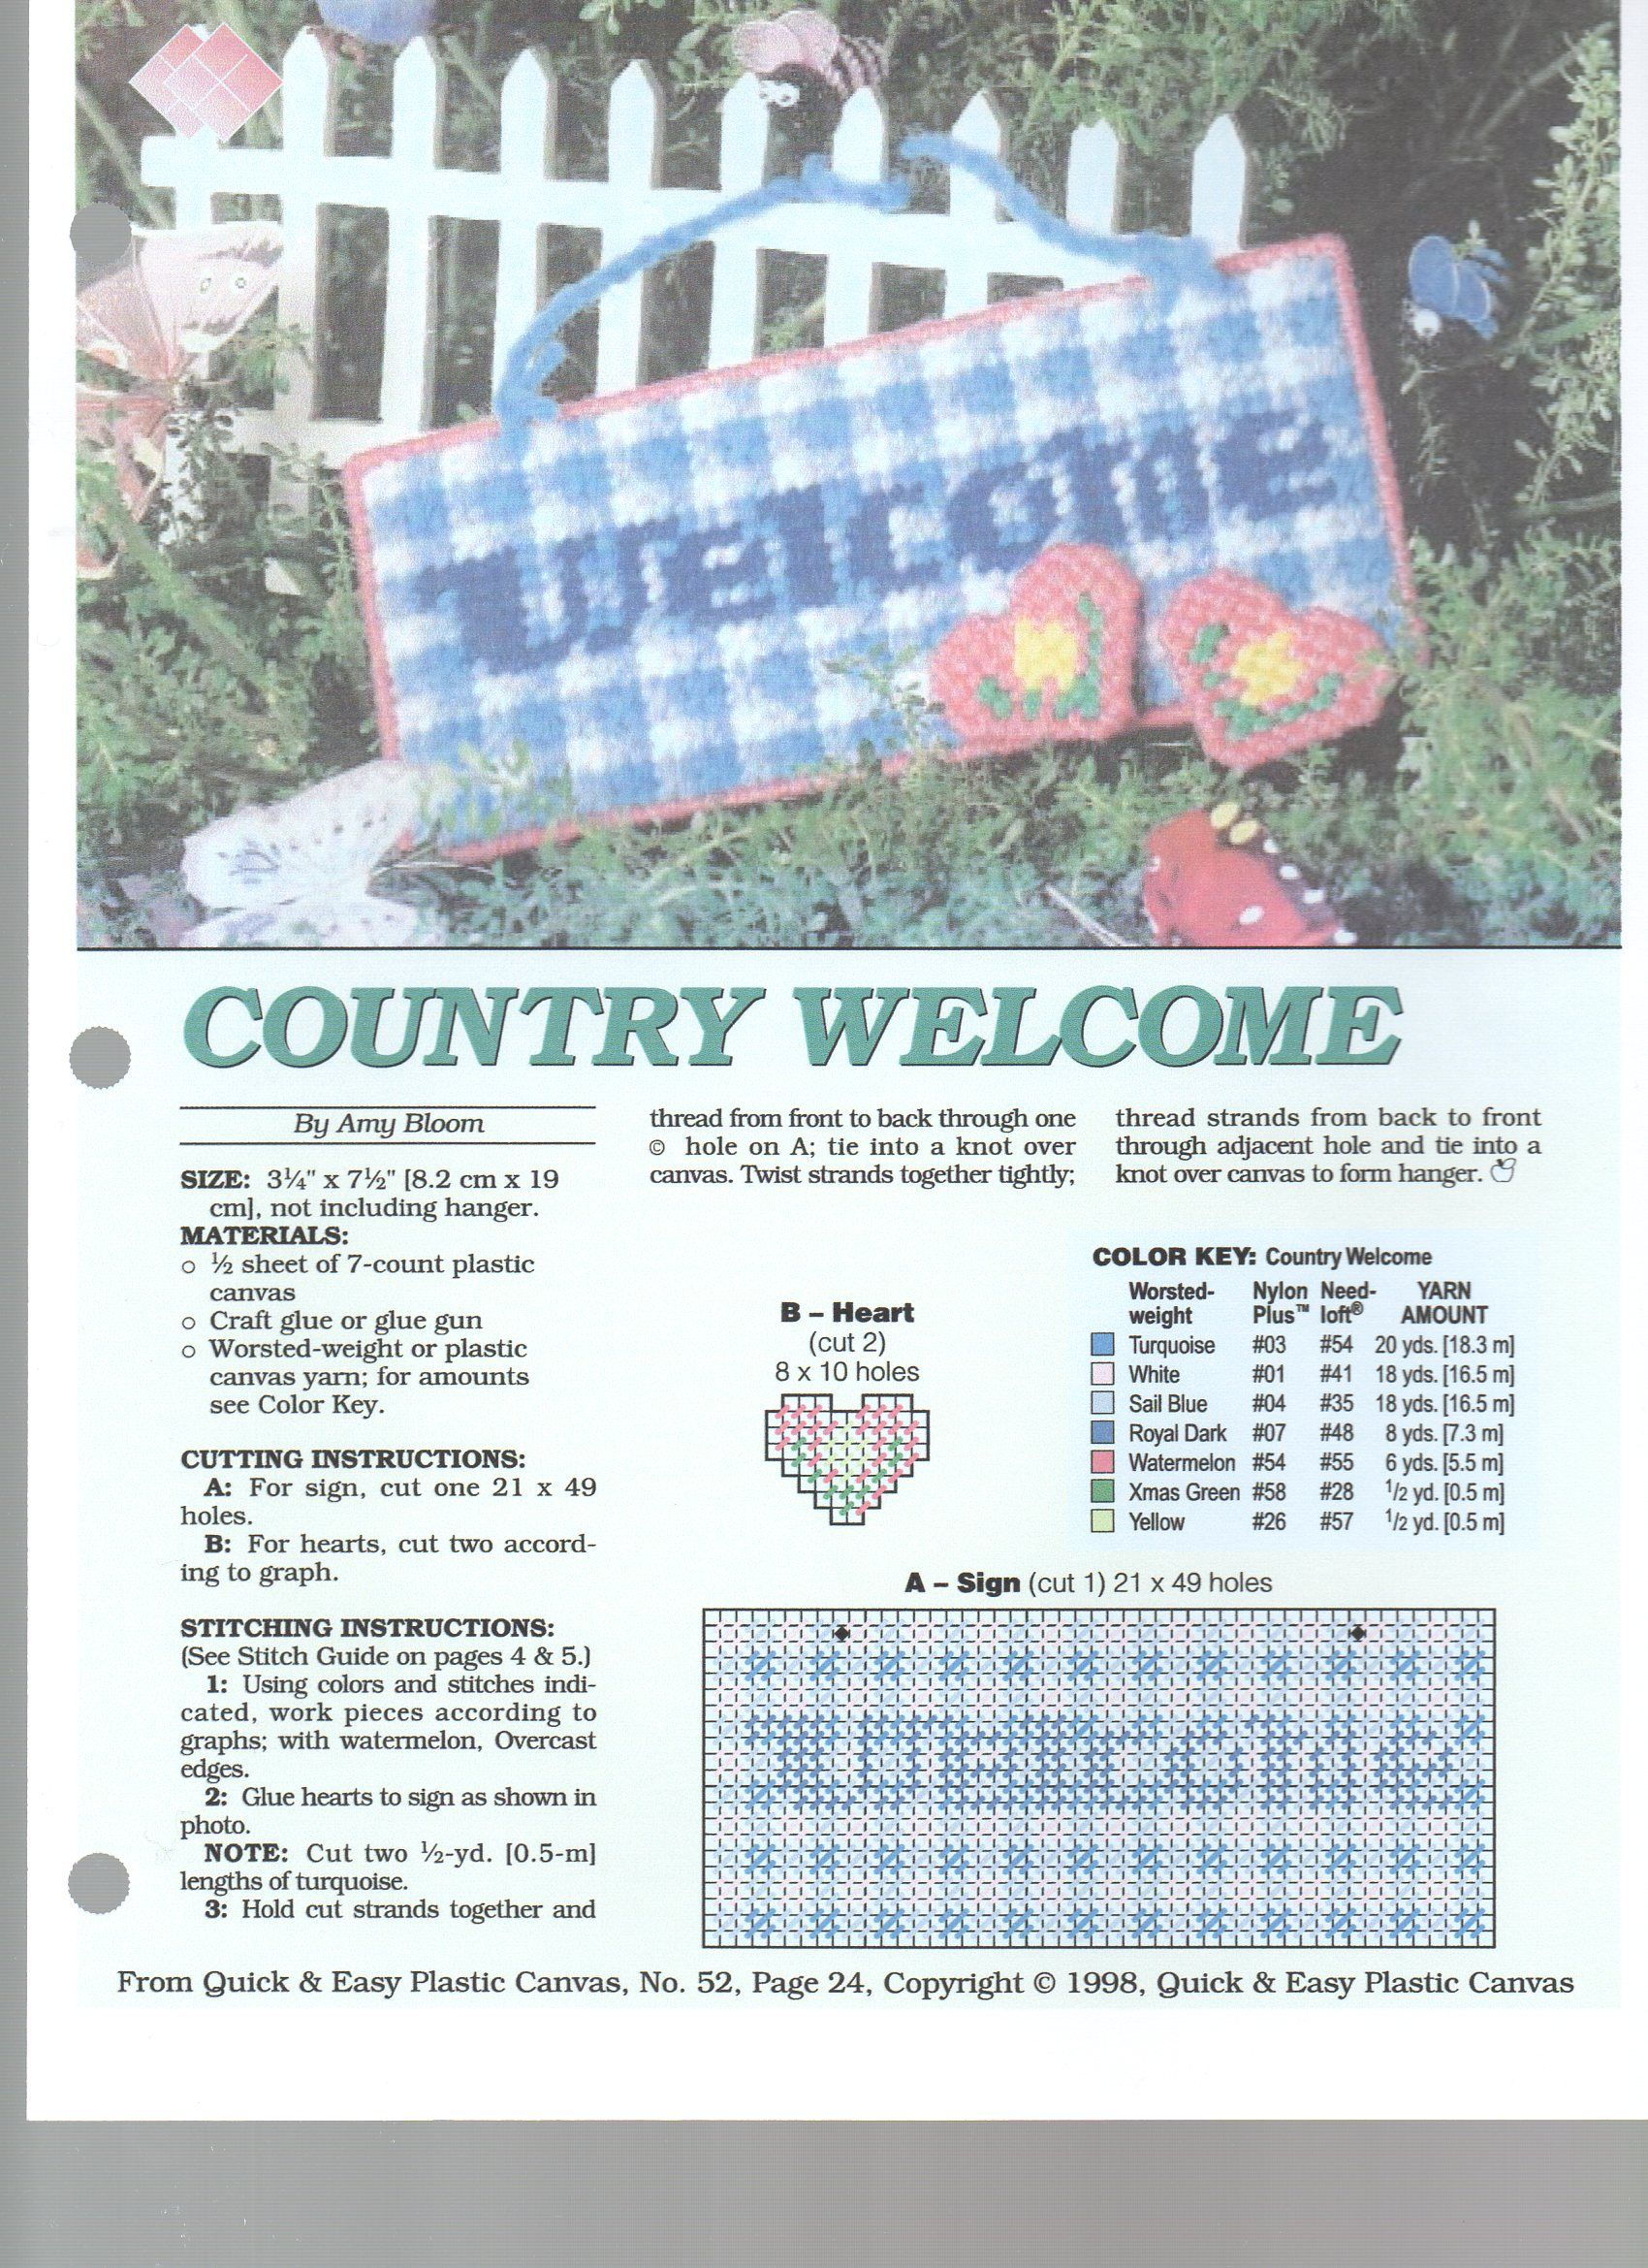 Country Welcome With Images Plastic Canvas Crafts Plastic Canvas Christmas Plastic Canvas Patterns